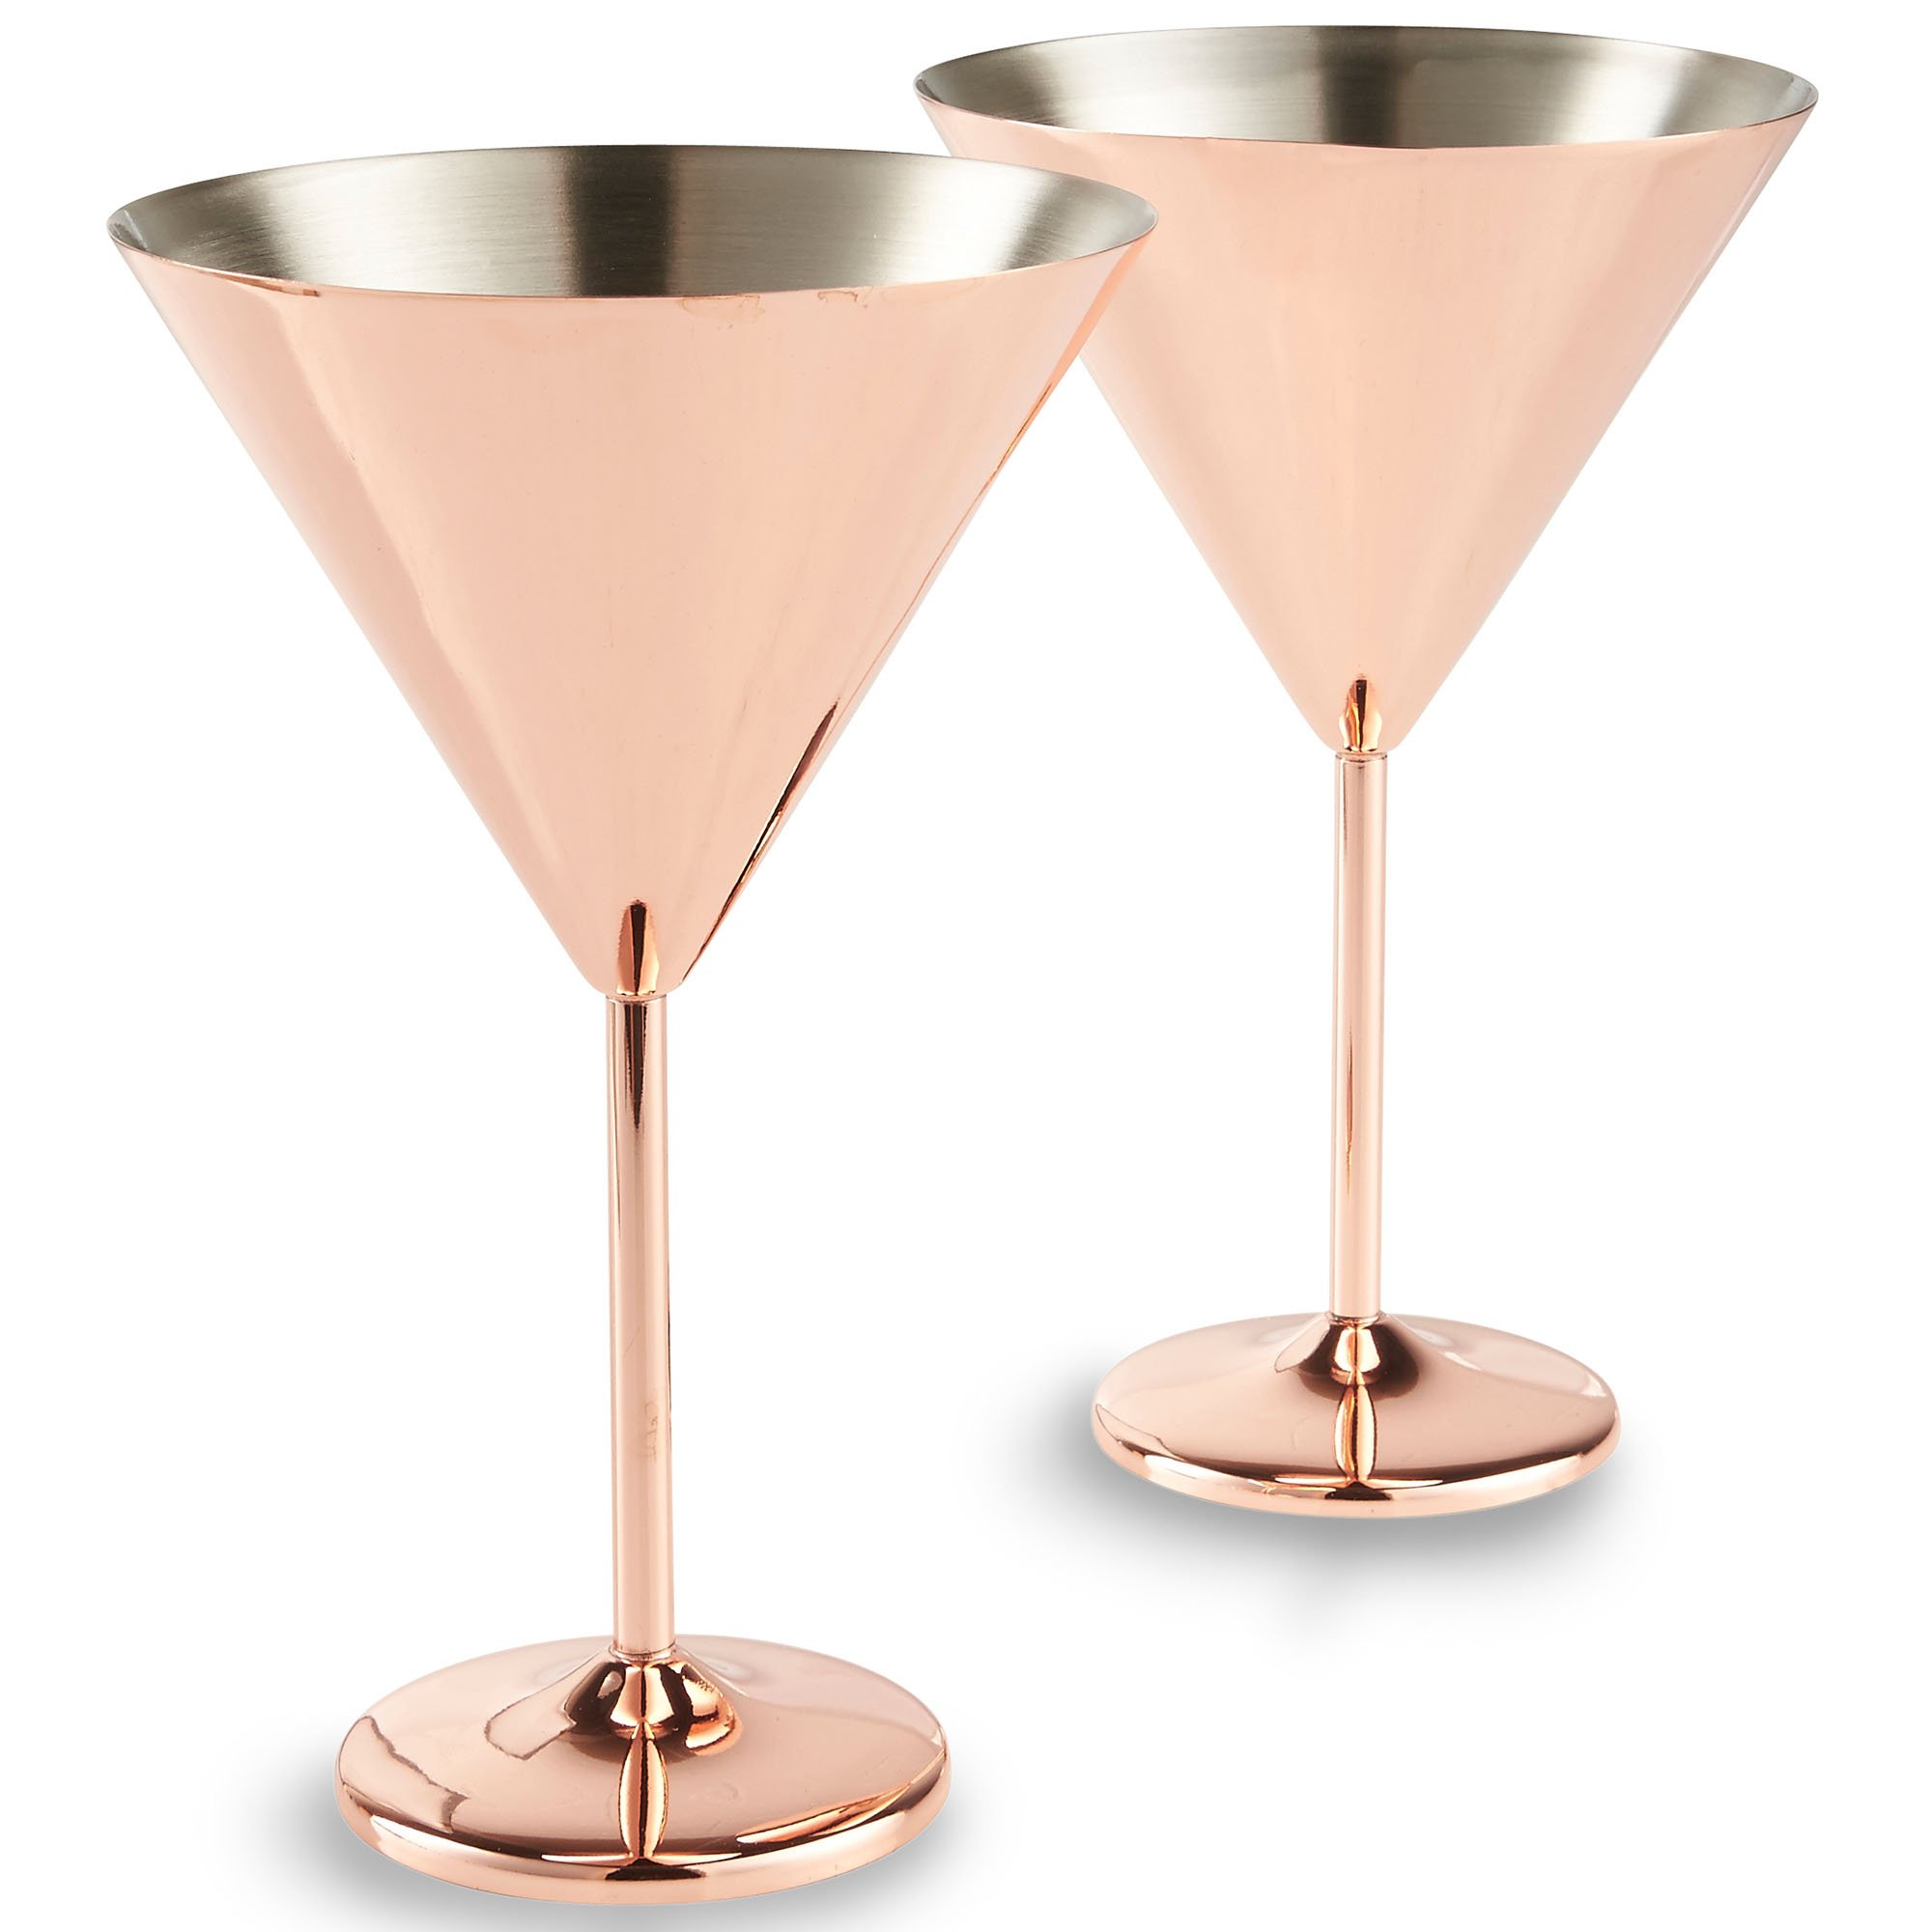 VonShef Copper Martini Cocktail Glasses, Stainless Steel, Set of 2 16oz Glasses with Gift Box by VonShef